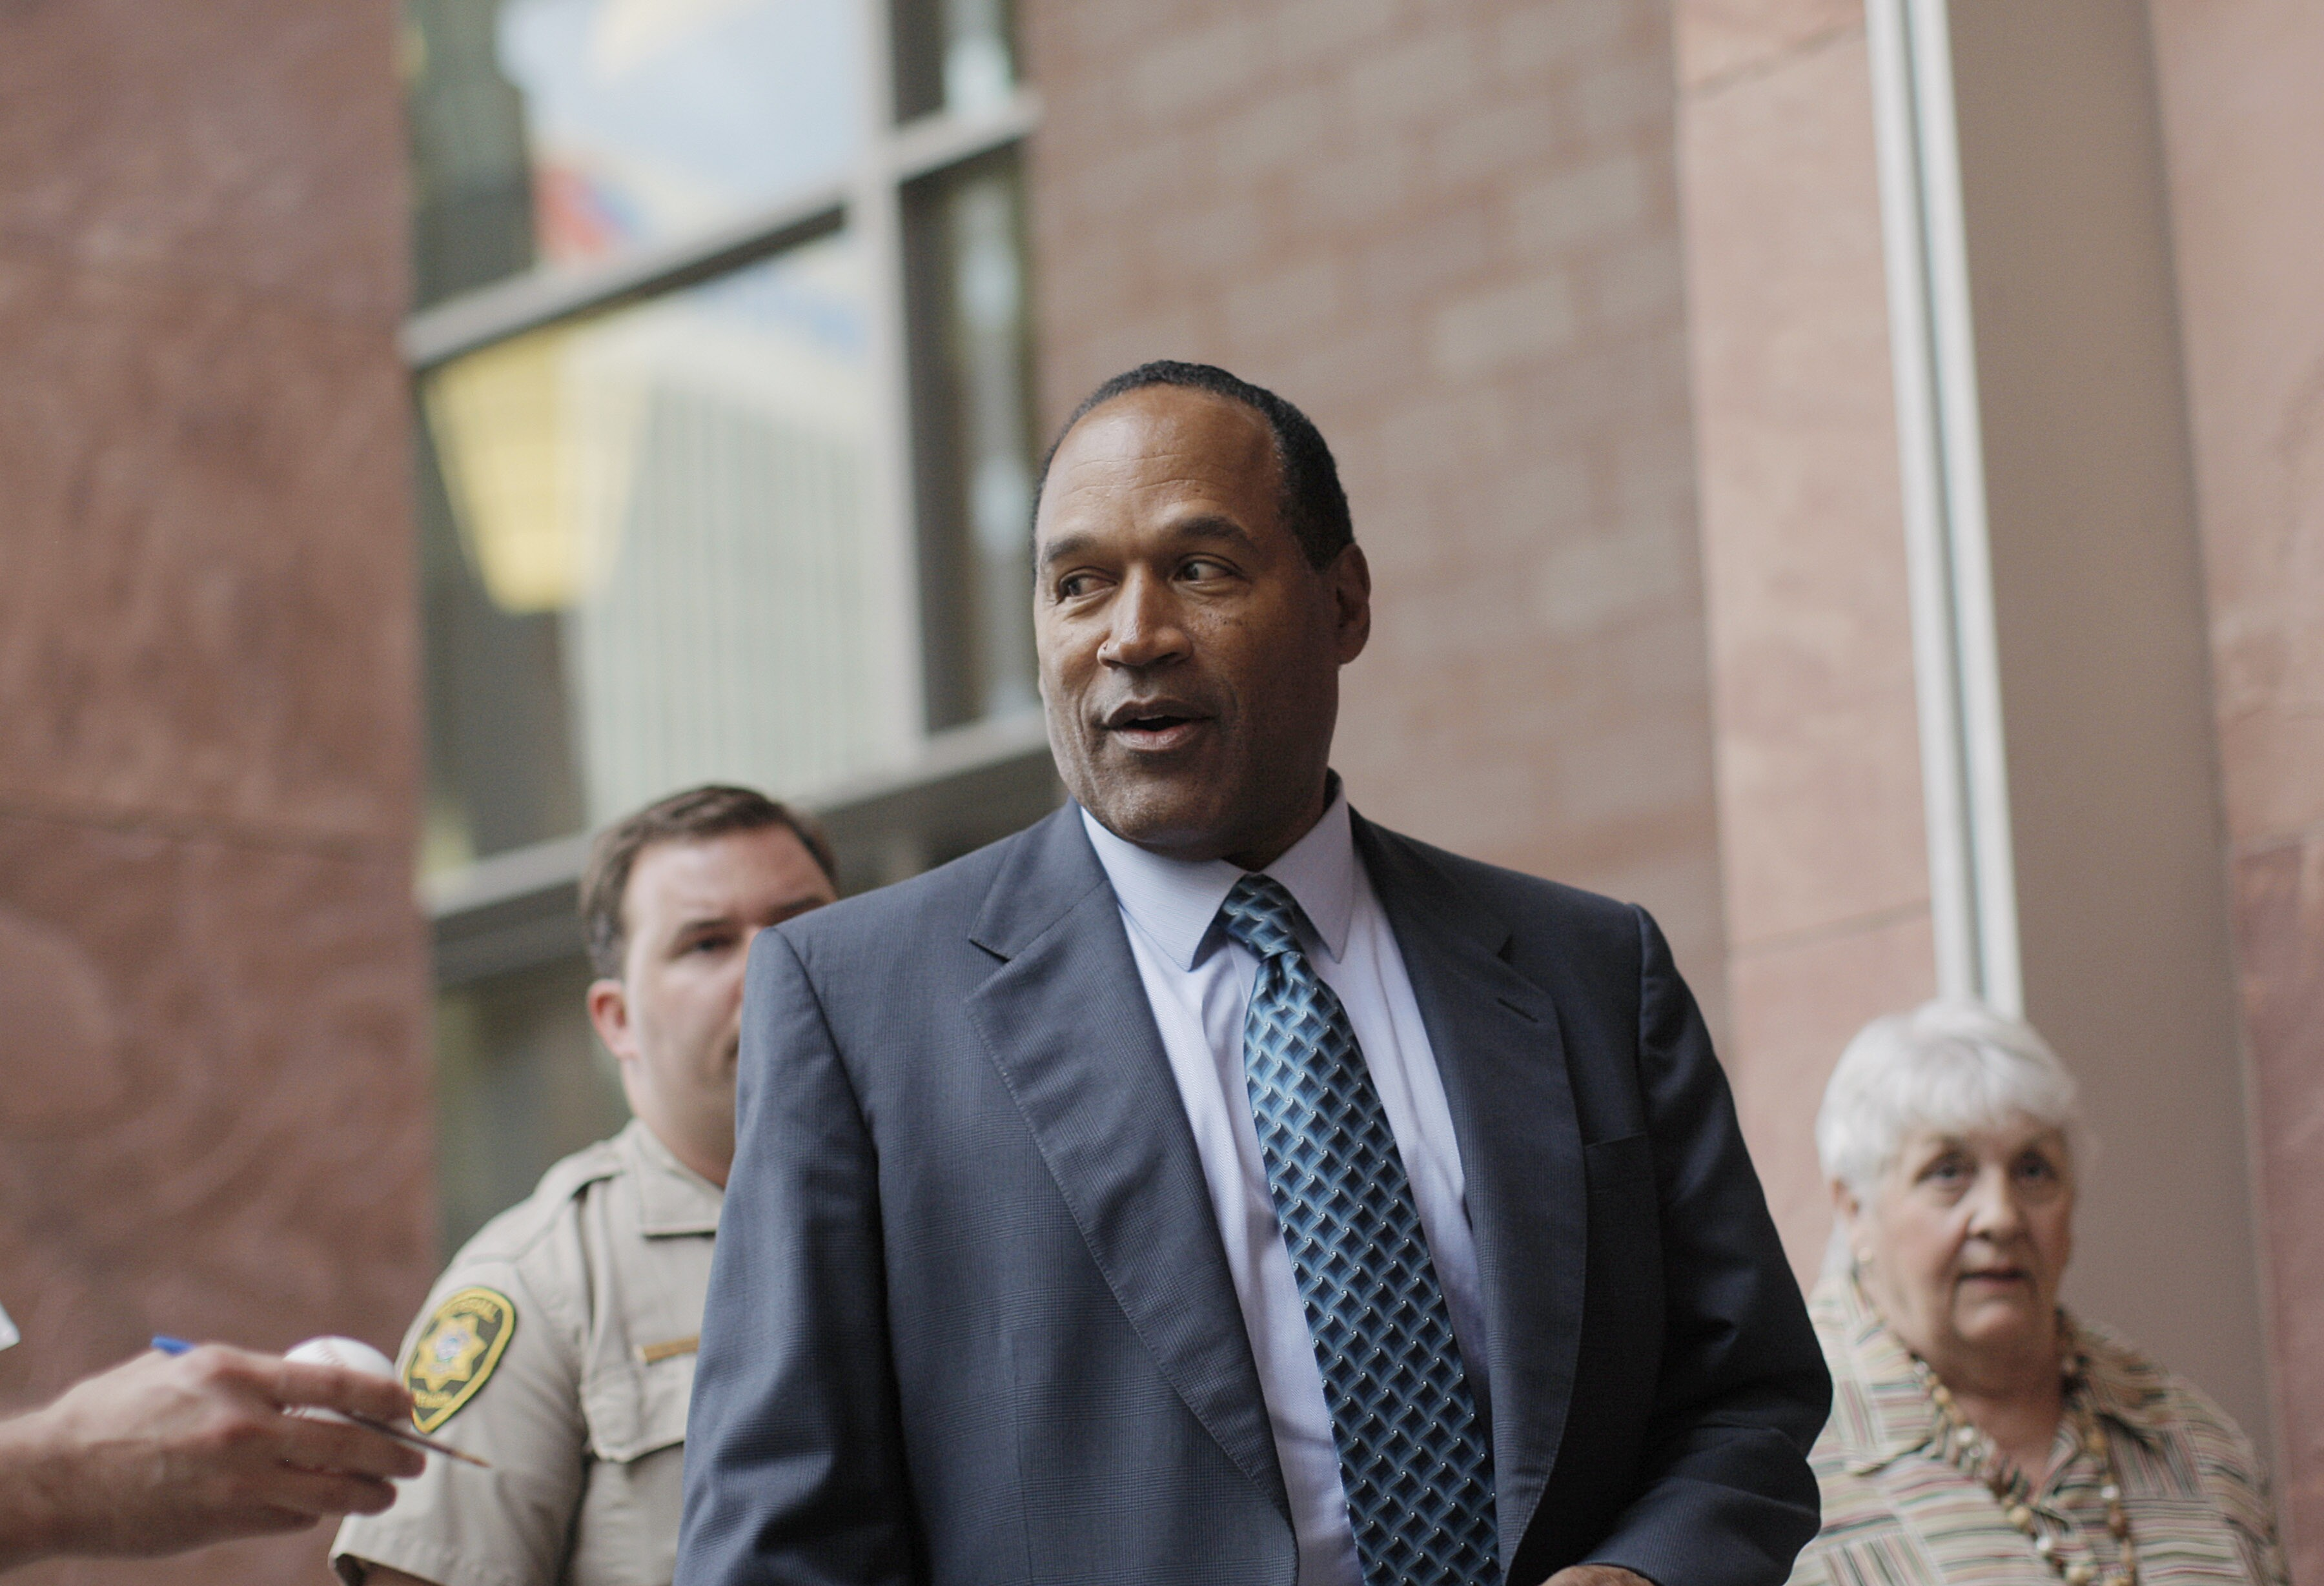 OJ Simpson: Colin Kaepernick 'made a bad choice in attacking the flag'